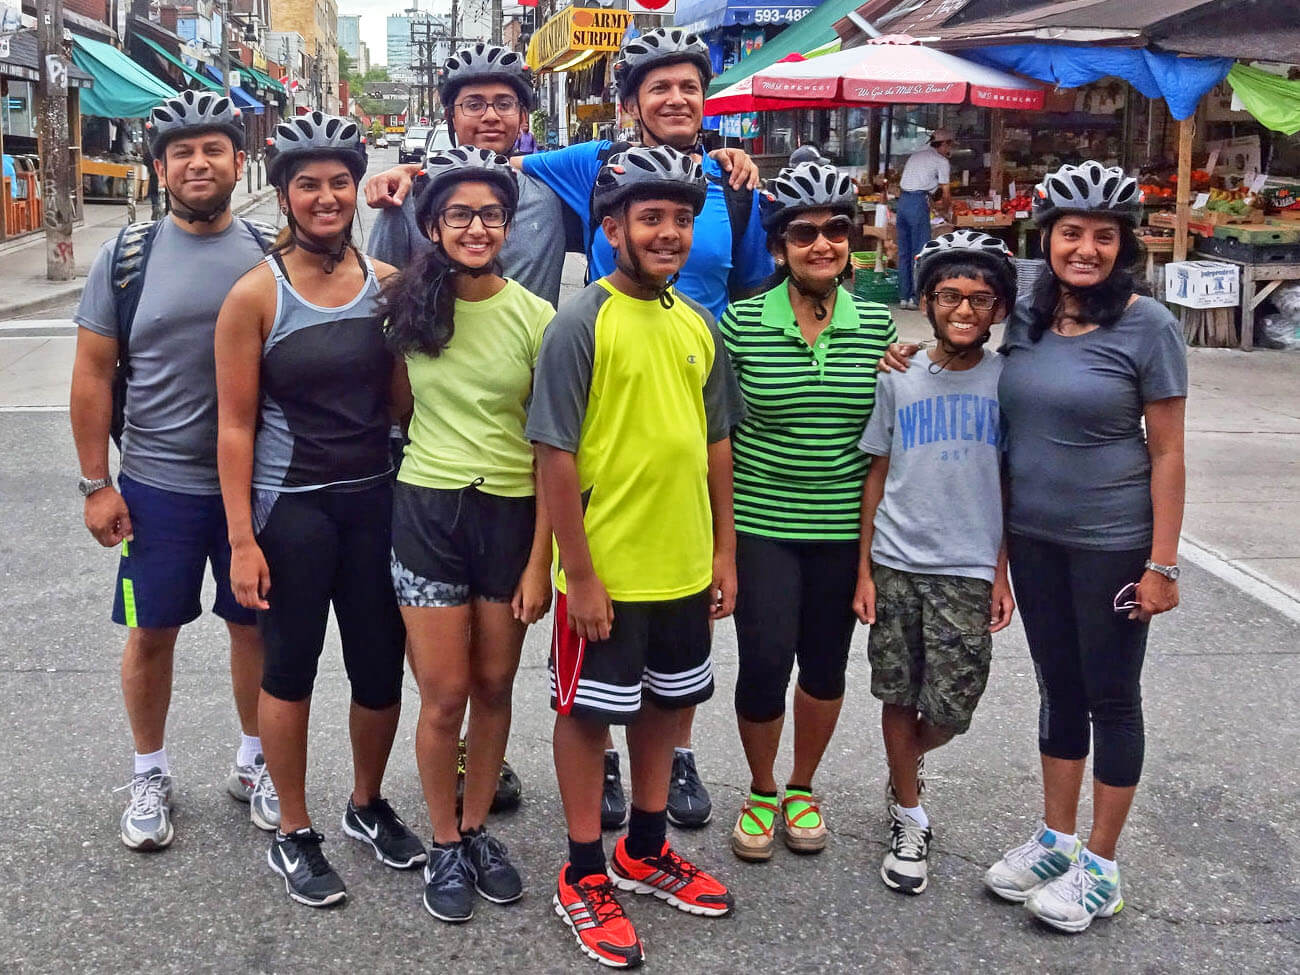 Family Bicycle Tours of Toronto